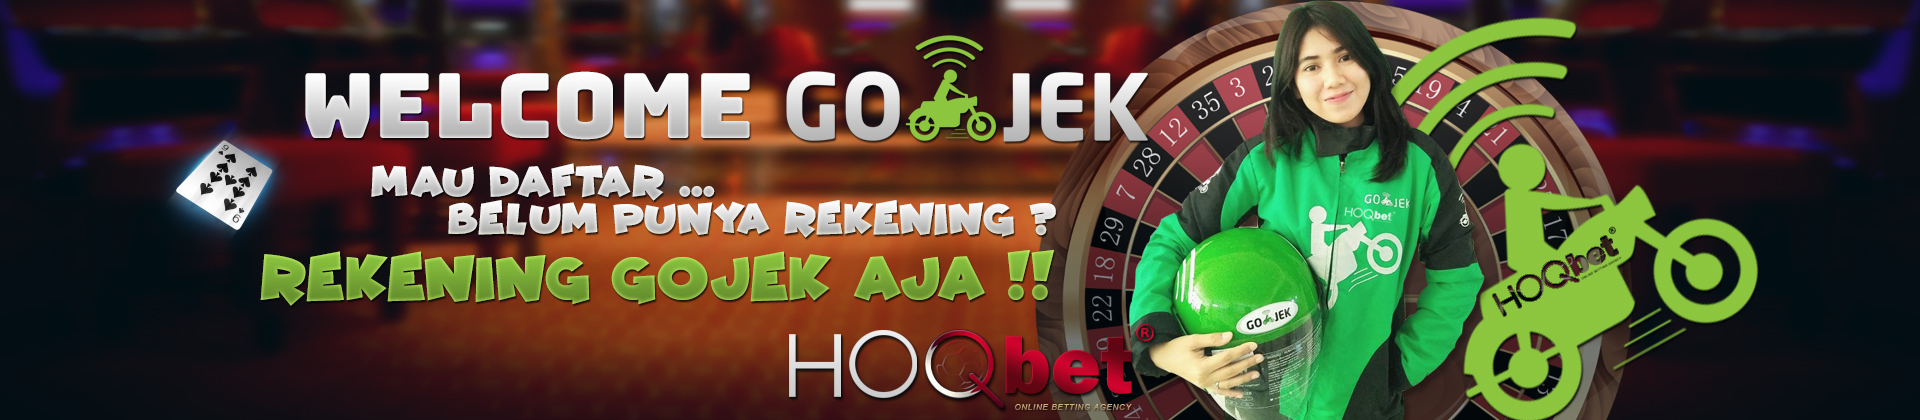 Welcome GO-JEK